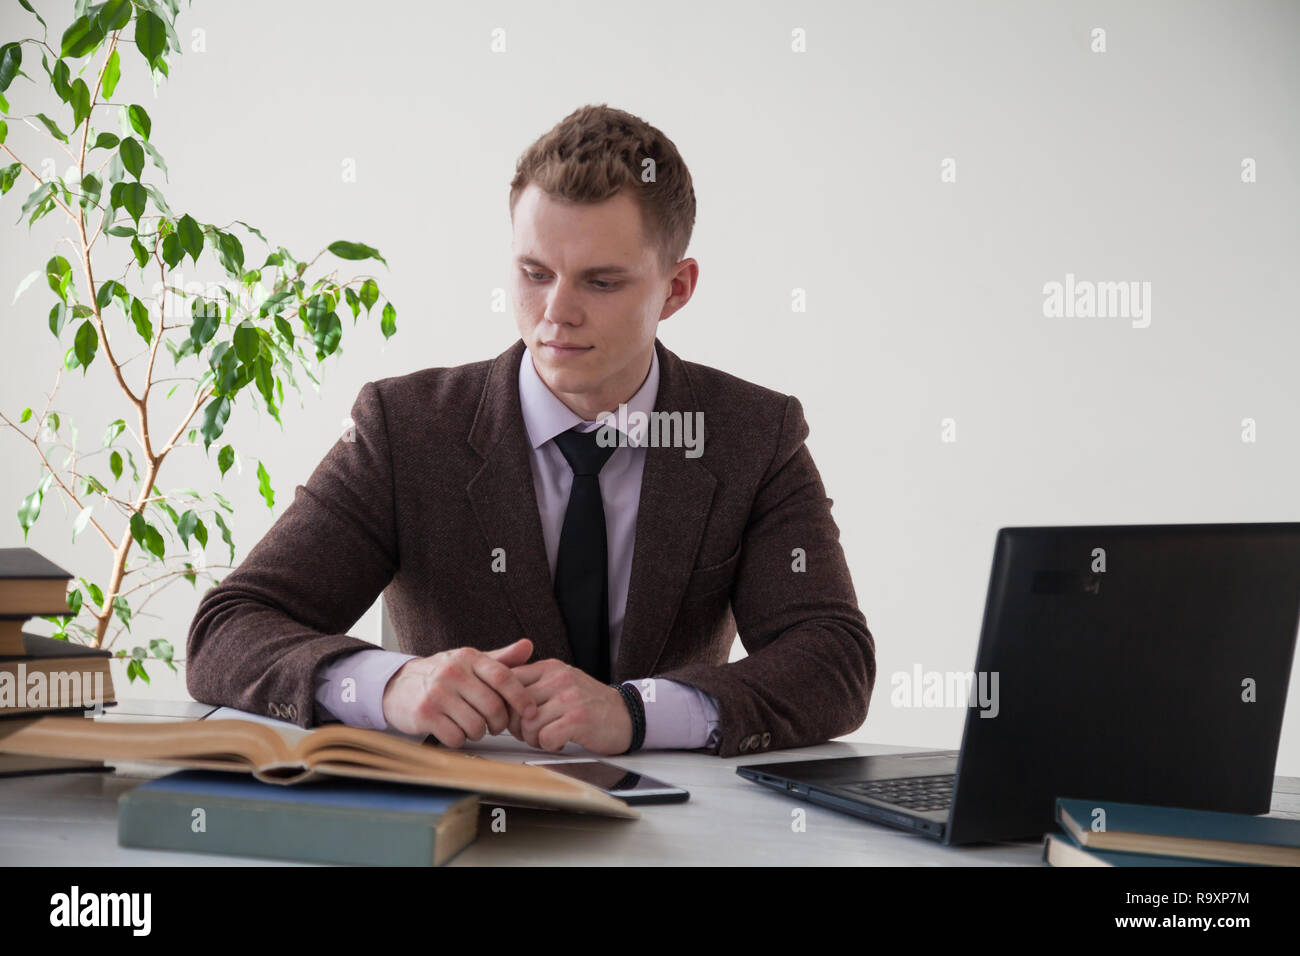 a man works in the Office at the computer business clerk  - Stock Image